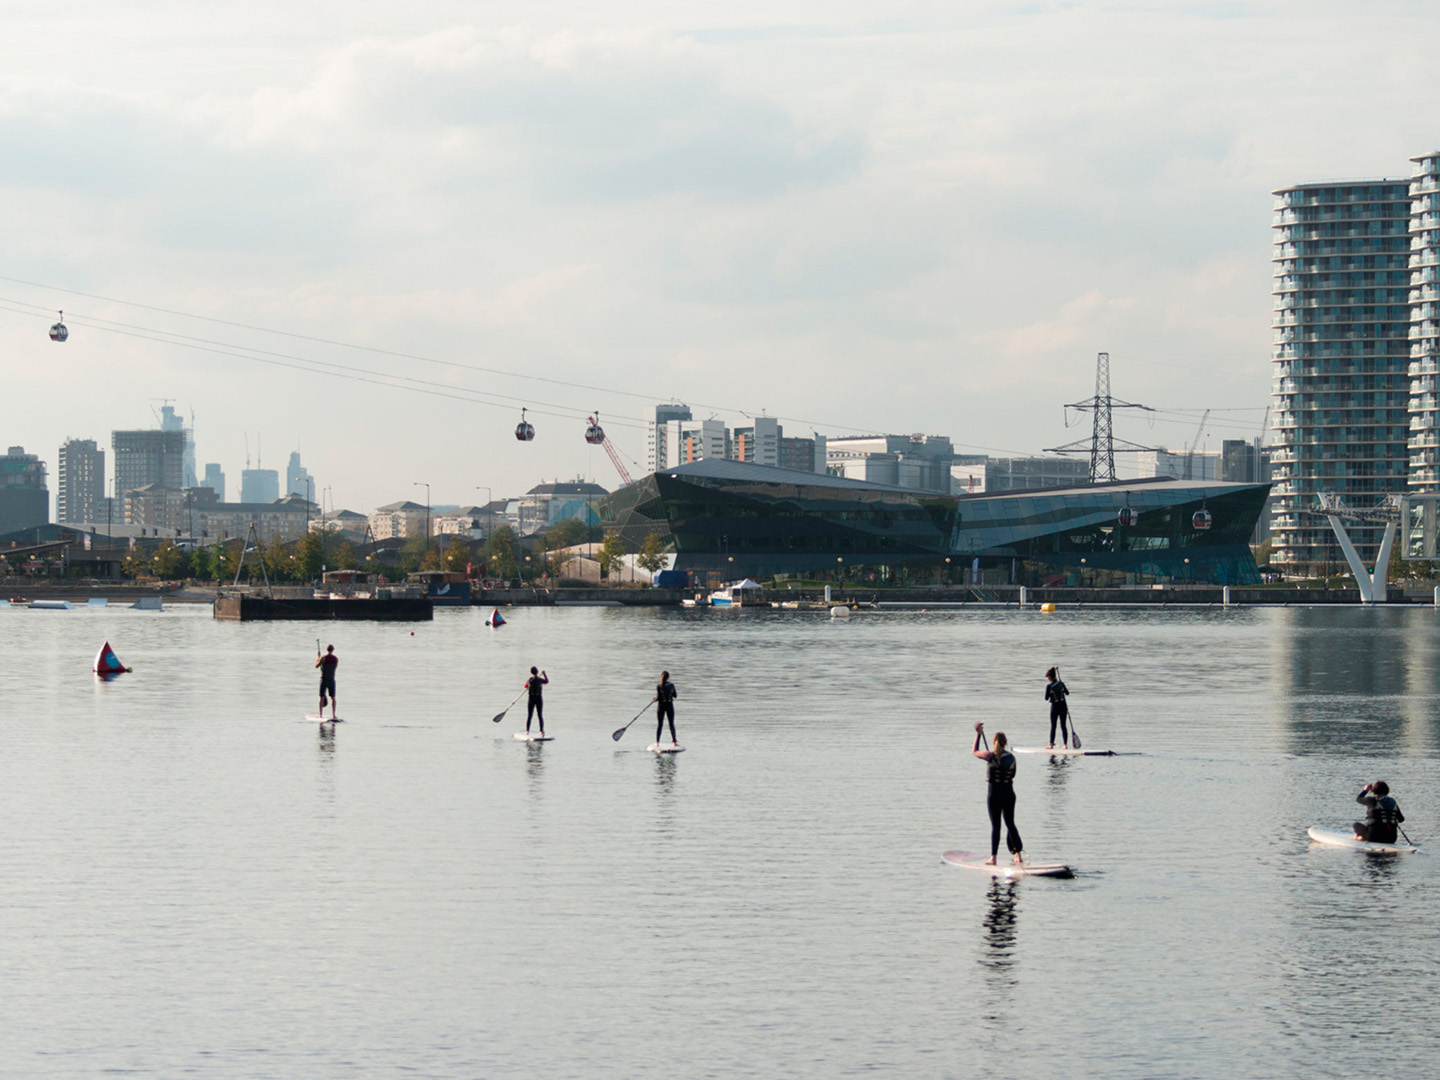 The Royal Docks: Equalising opportunity in Public Space